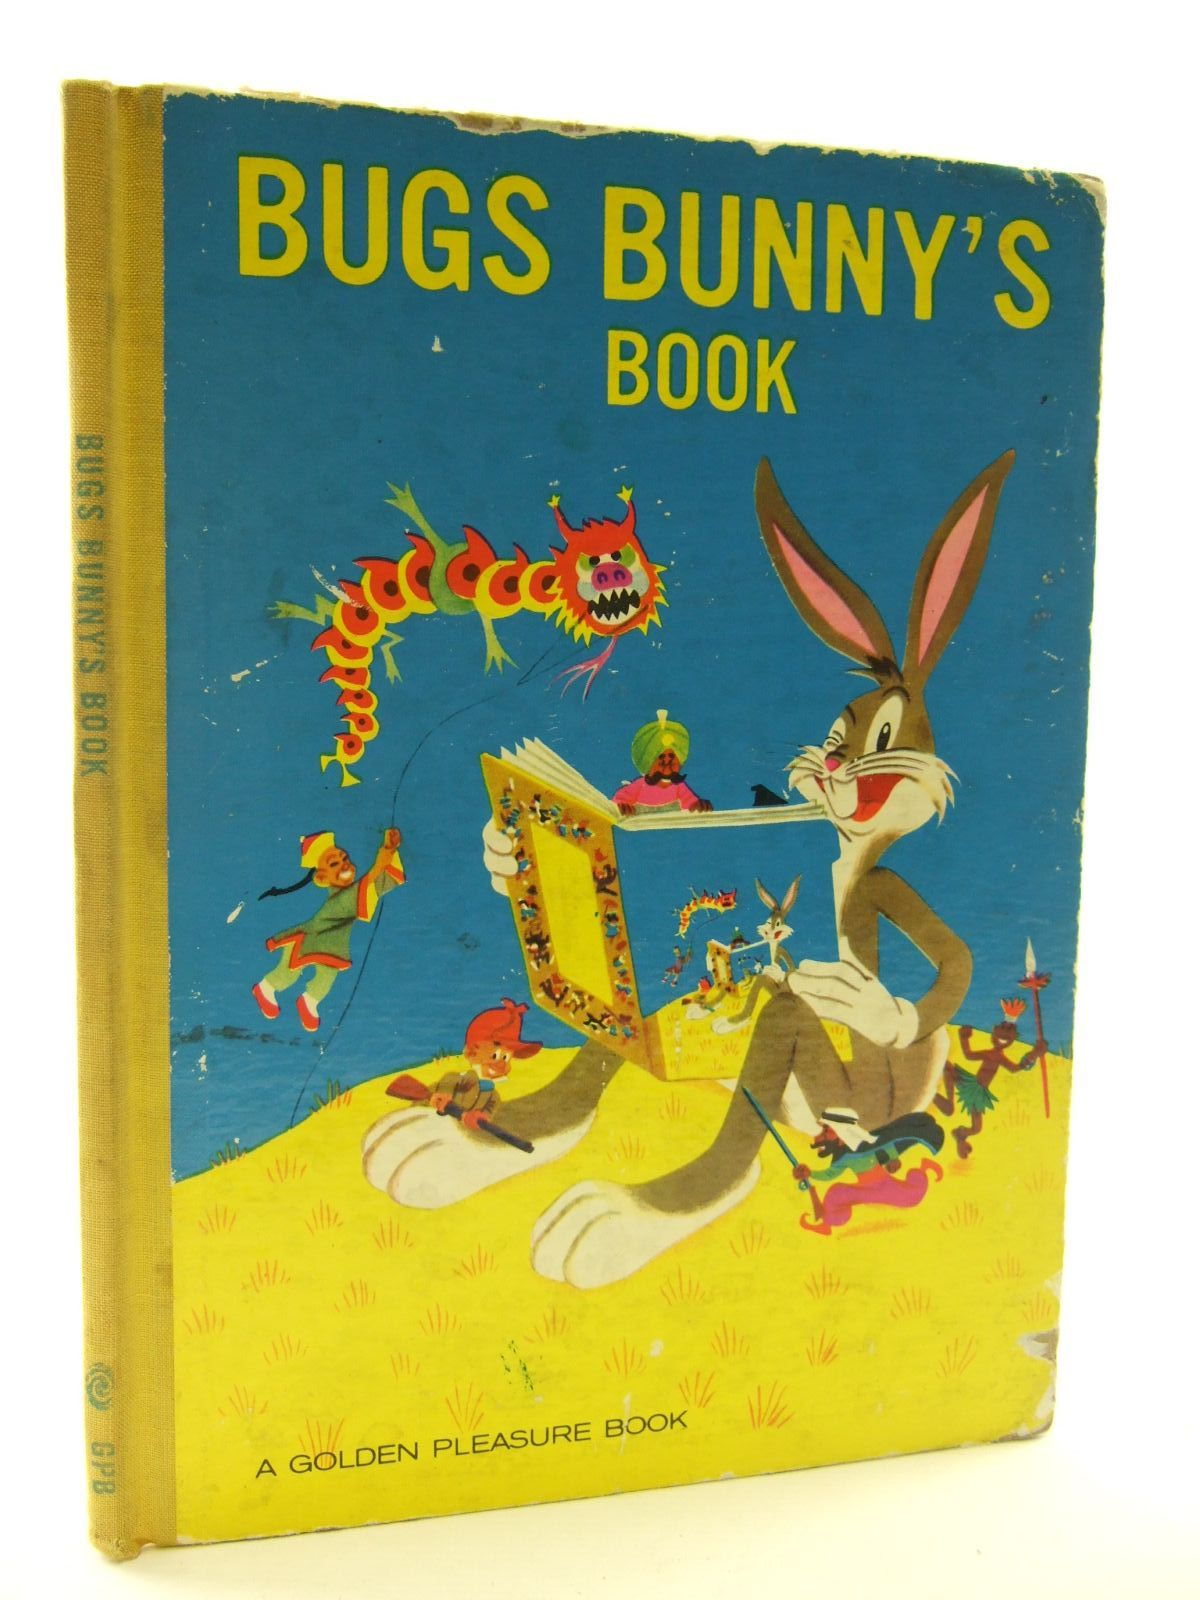 Photo of BUGS BUNNY'S BOOK published by Golden Pleasure books (STOCK CODE: 2107193)  for sale by Stella & Rose's Books